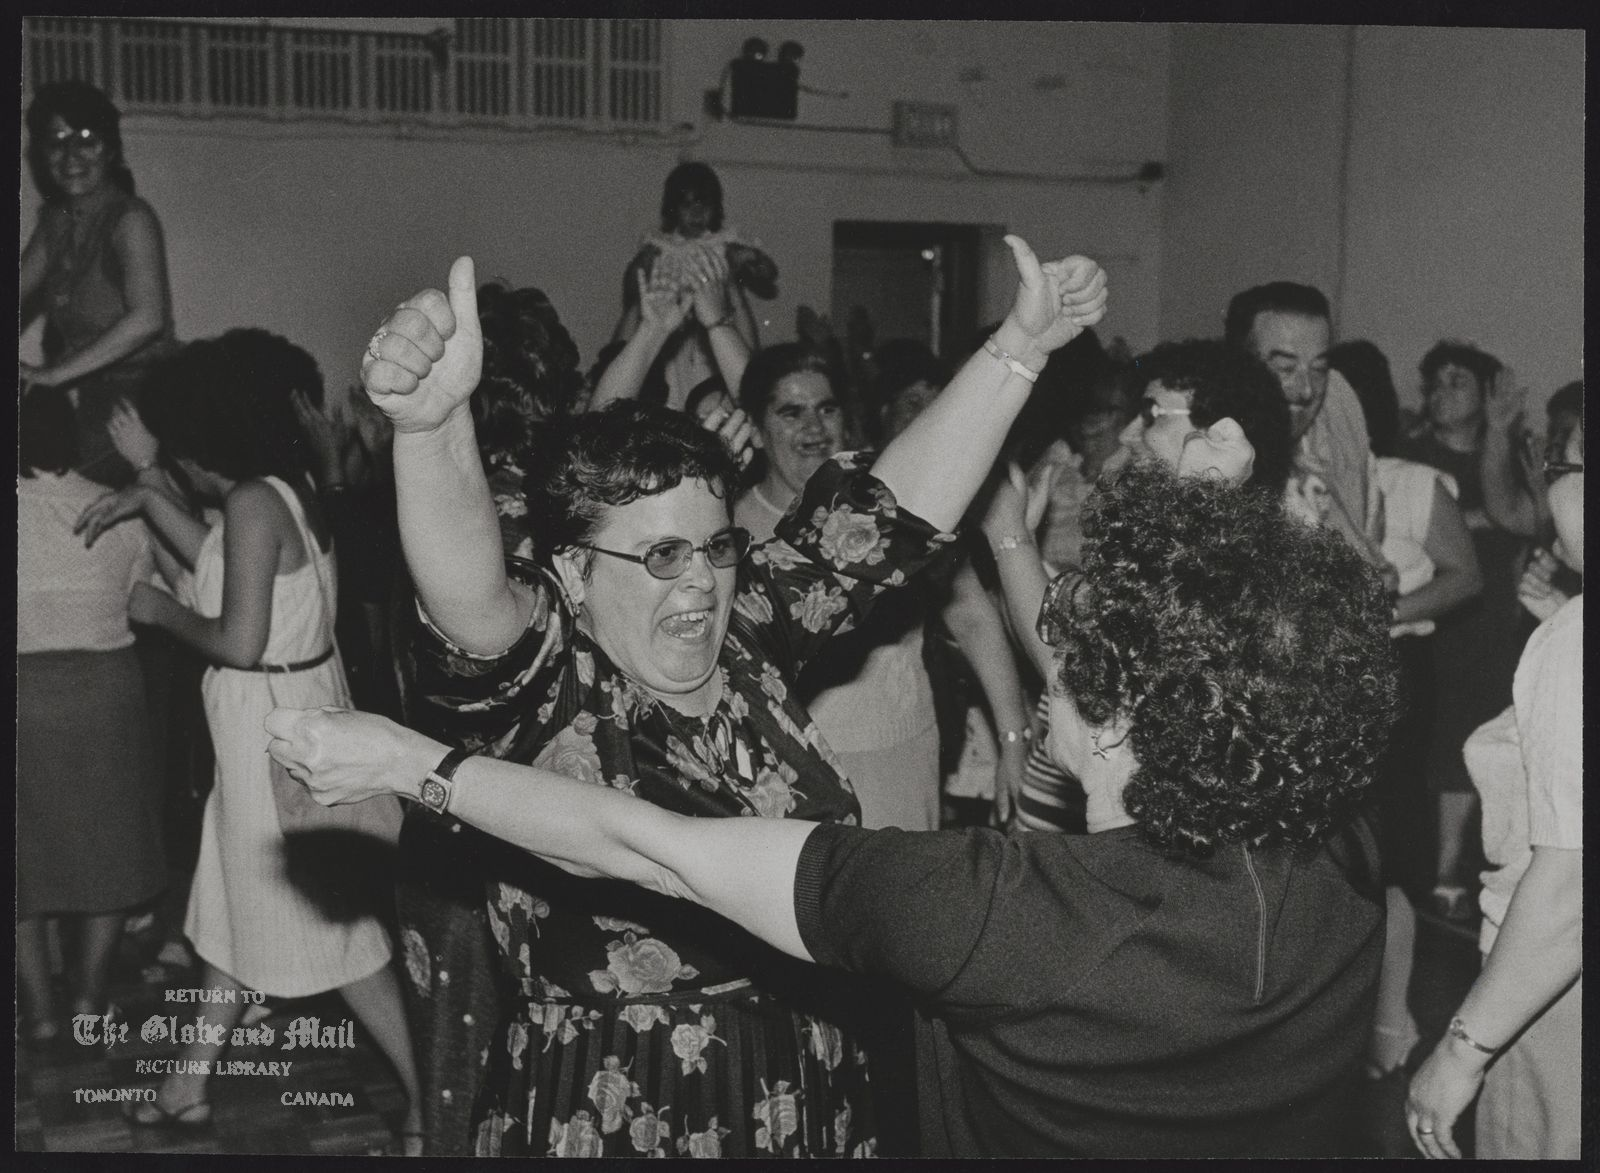 FOOD AND SERVICE WORKERS OF CANADA Cleaning lady Mara Haruda (middle) exults in victory after her union ratified agreement ending the six-week strike at First Canadian Place.